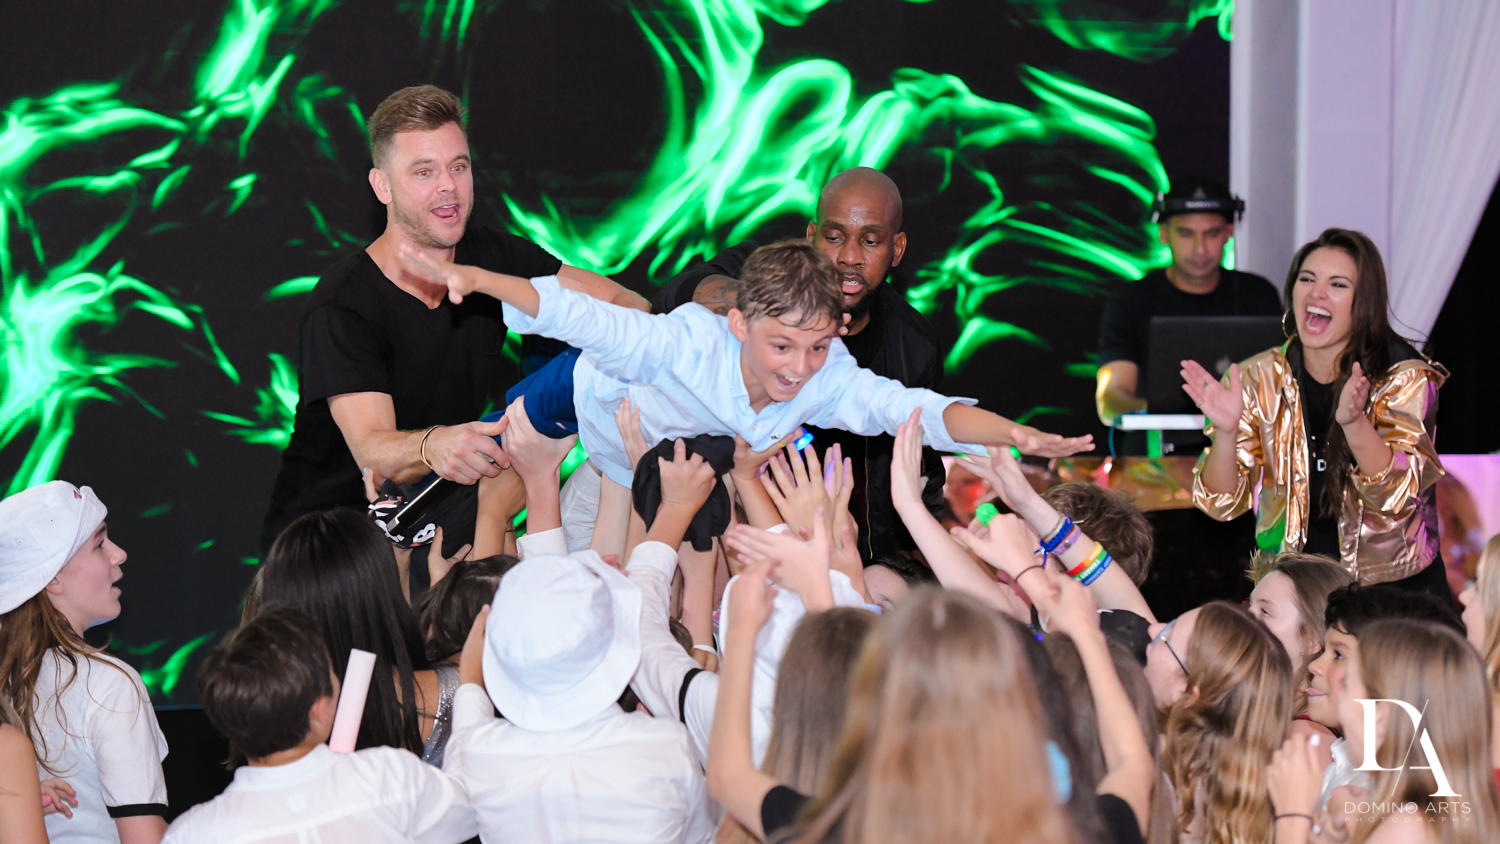 crowd surfing at Masquerade Ball Bat Mitzvah at Ritz Carlton Fort Lauderdale by Domino Arts Photography